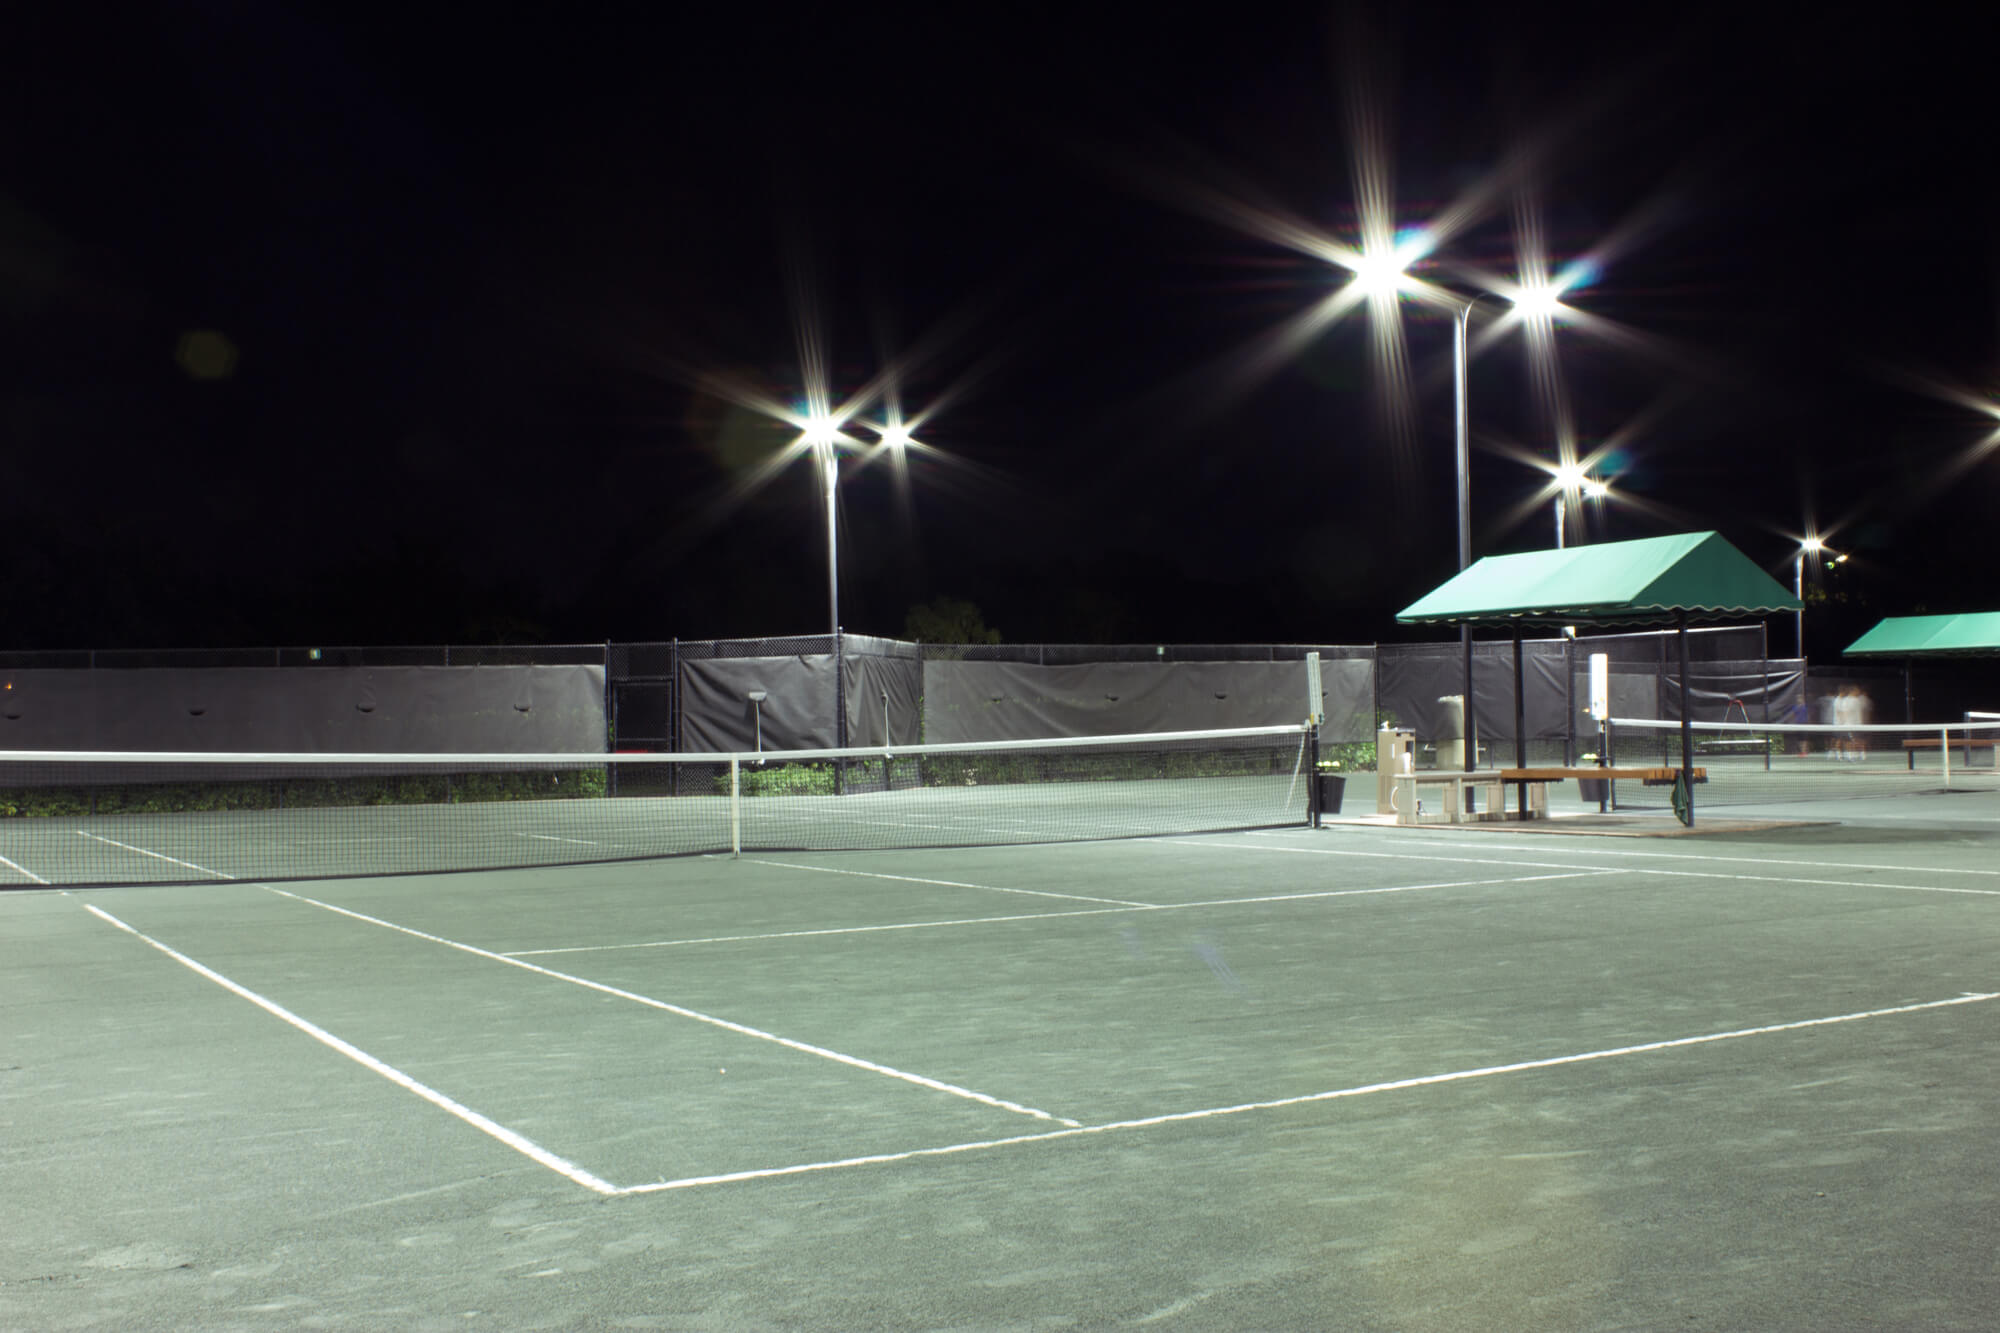 spring-run-golf-club-resort-parking-lot-tennis-court-lighting-6_2000x1333.jpg